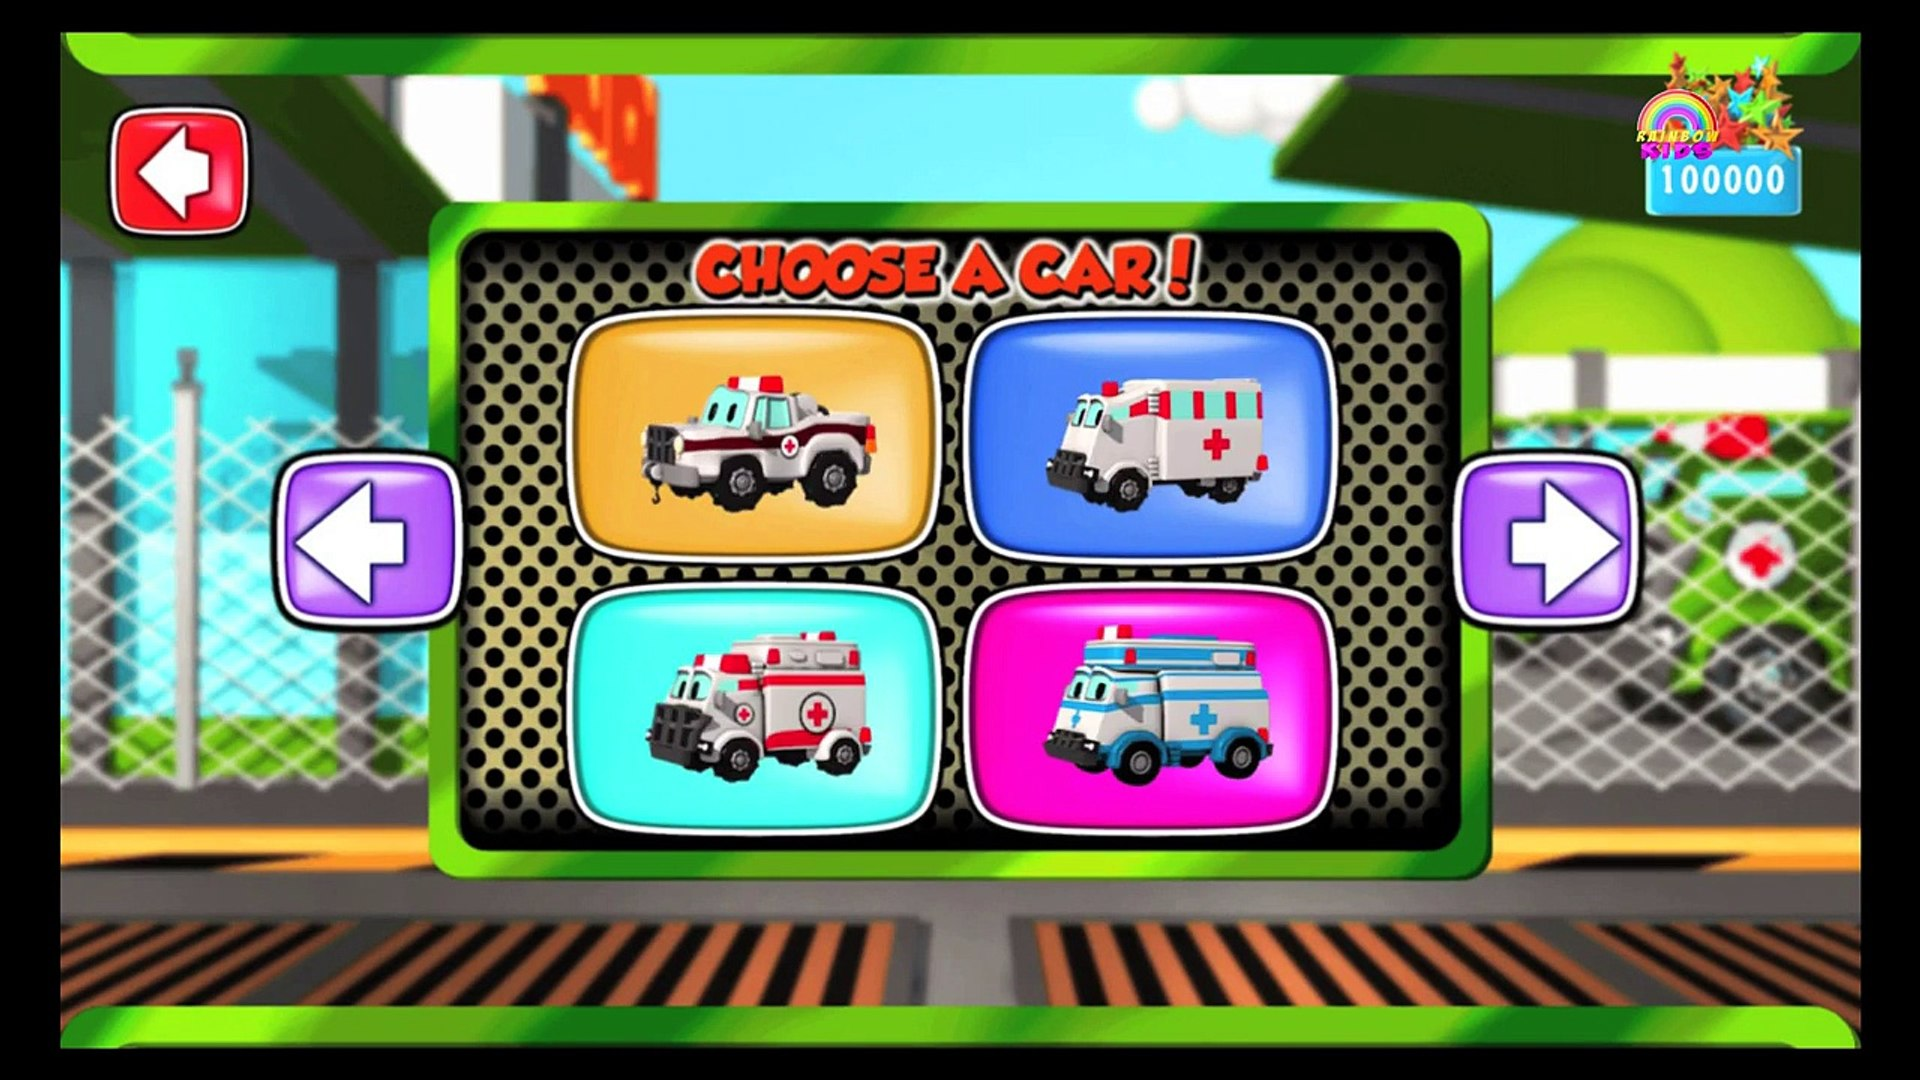 Police Car _ Gaming For Kids-LOS719A7yIc